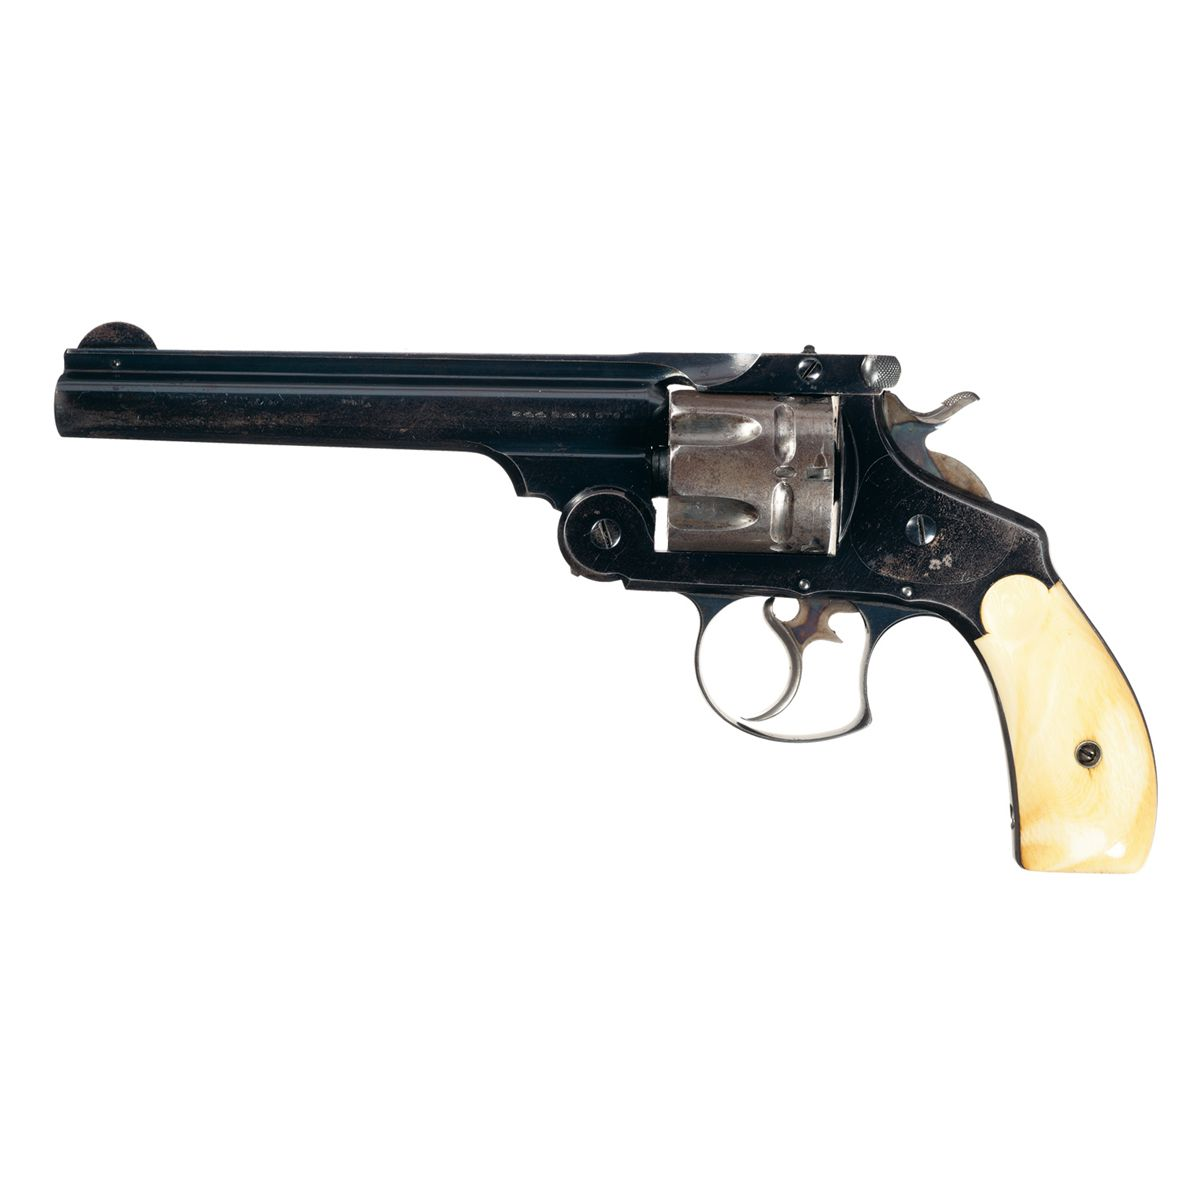 Smith & Wesson 44 Double Action First Model Revolver with Ivory Grips